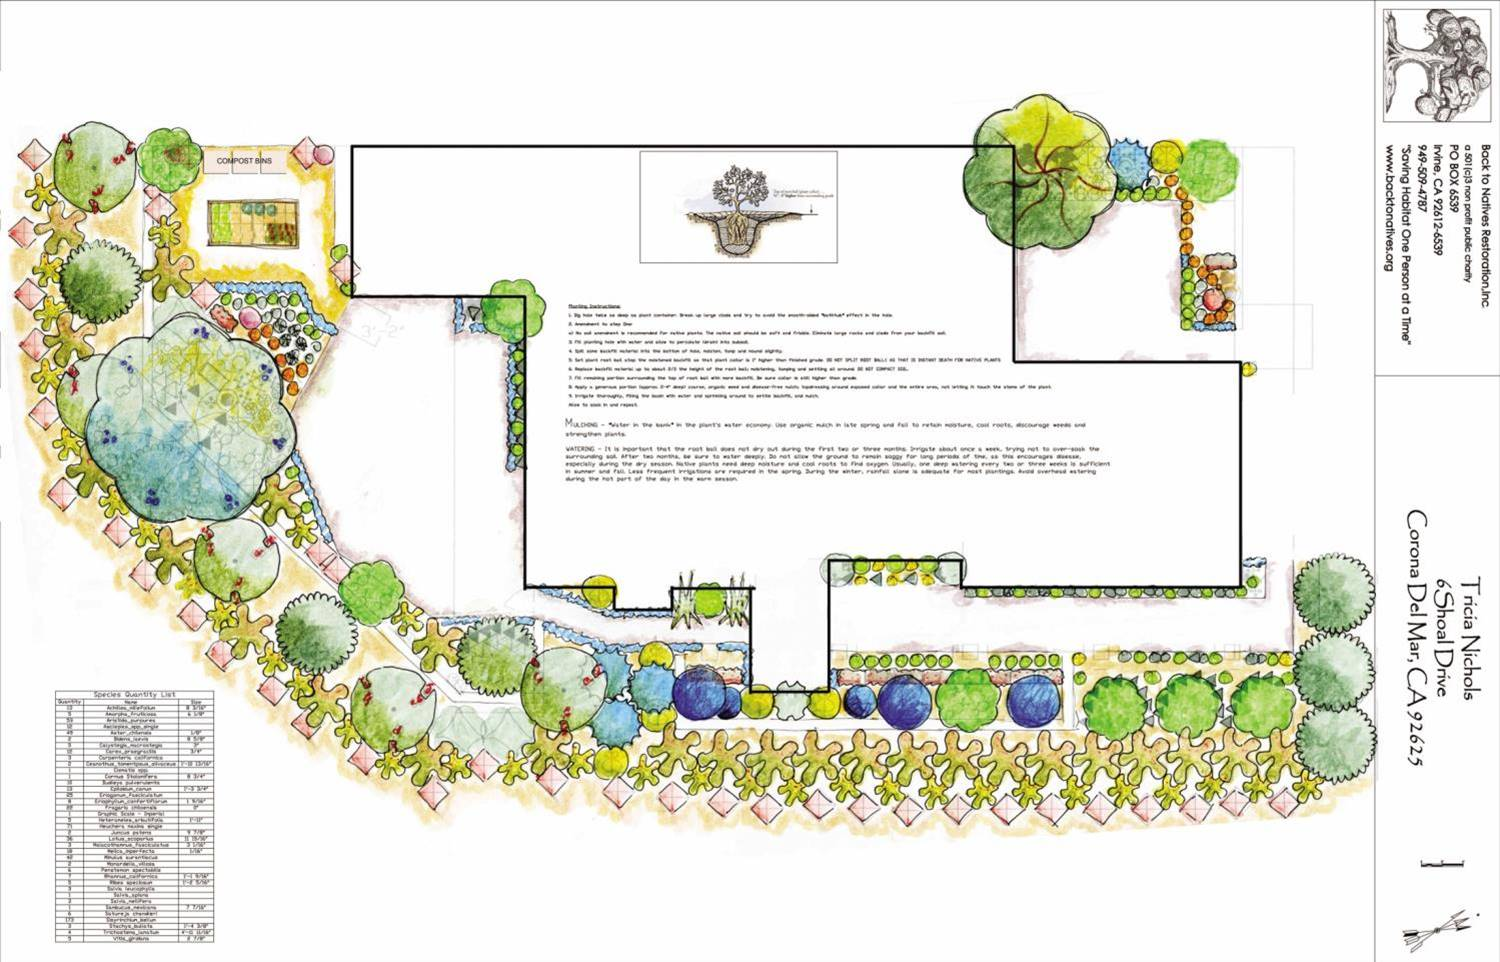 Landscape design services deposit back to natives for Landscape design services